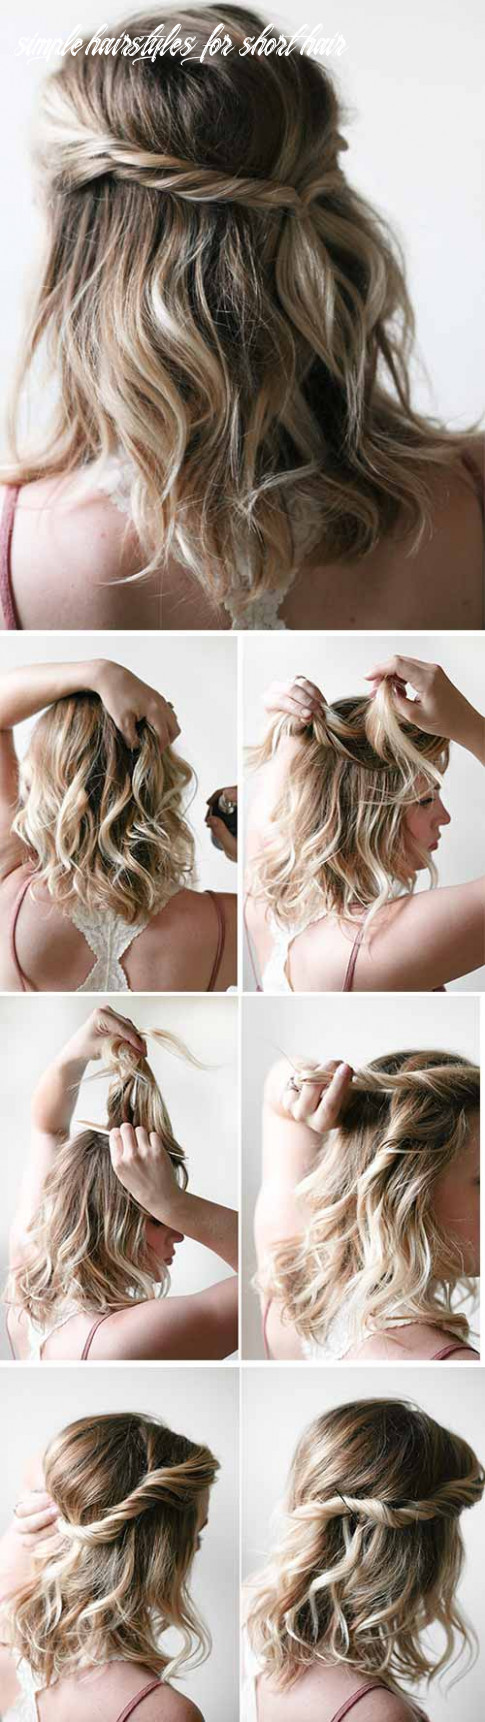 9 incredible diy short hairstyles a step by step guide simple hairstyles for short hair